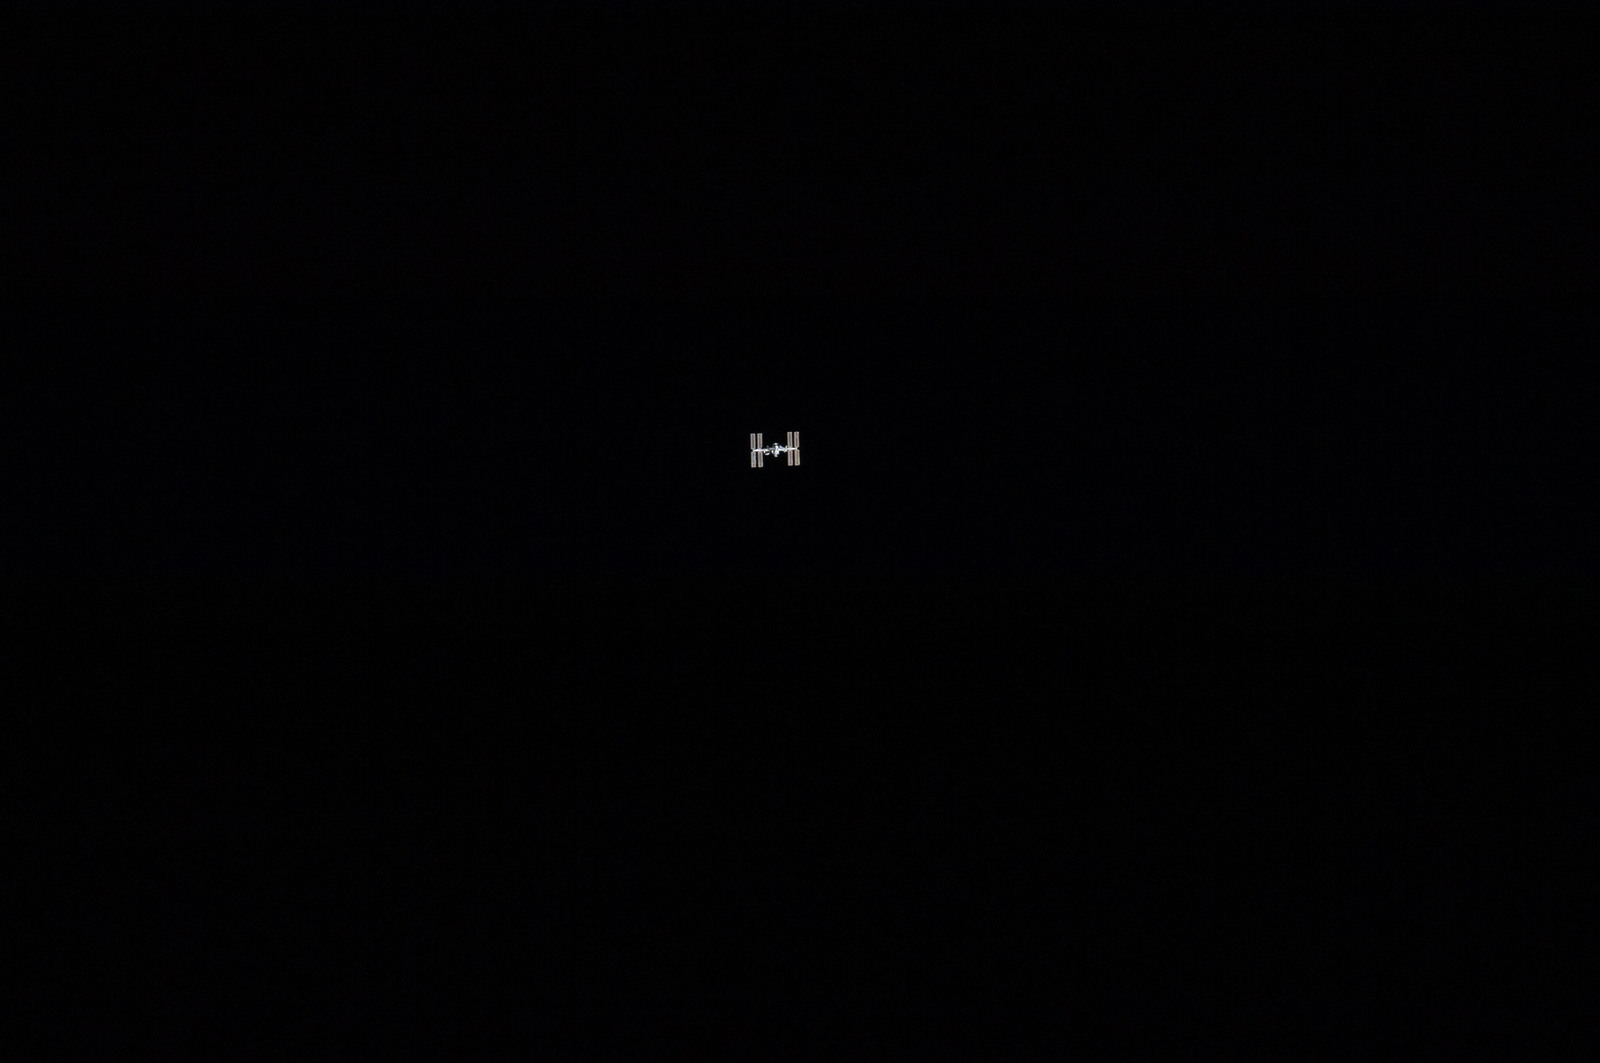 S134E006564 - STS-134 - Overall view of ISS taken during STS-134 Approach